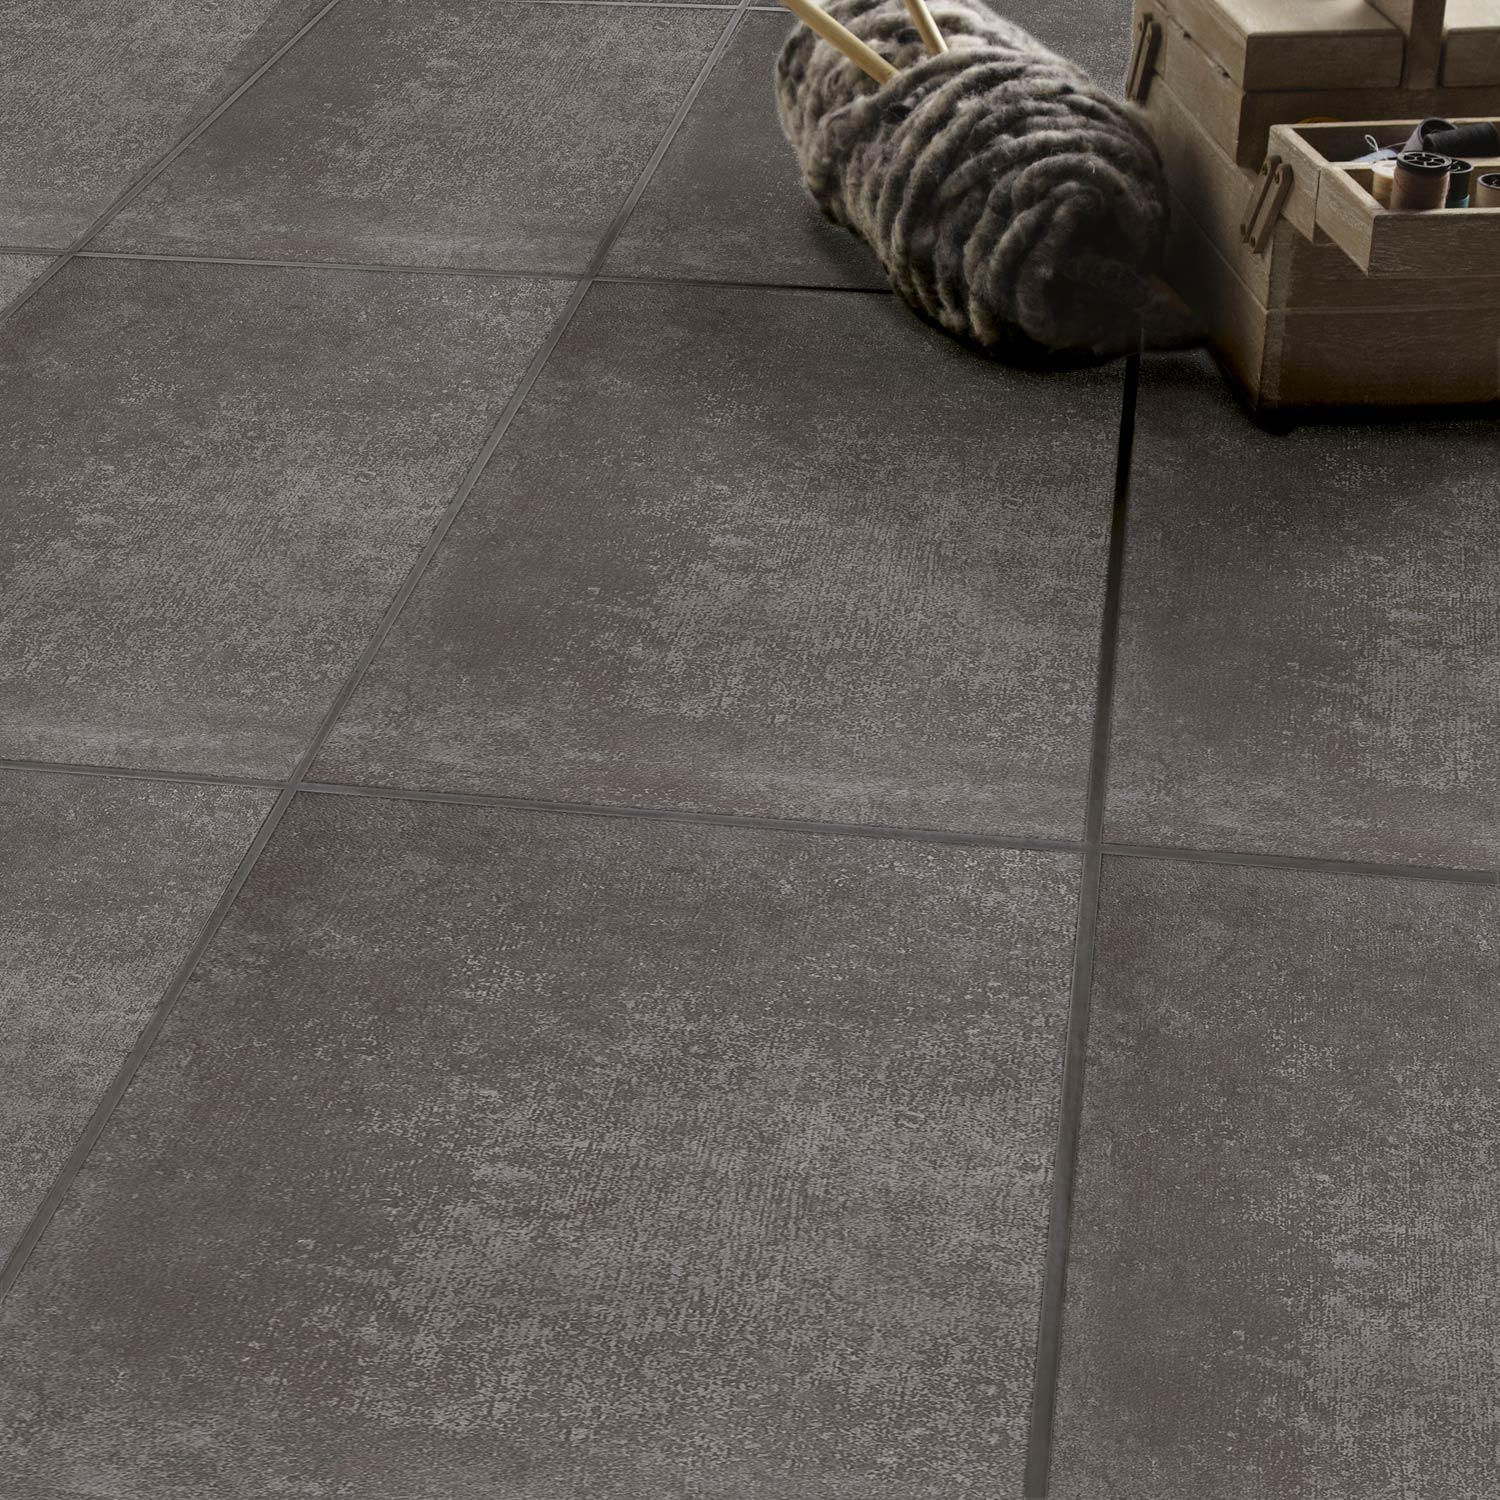 Carrelage gris clair ou gris anthracite on aime les deux for Carrelage gris anthracite